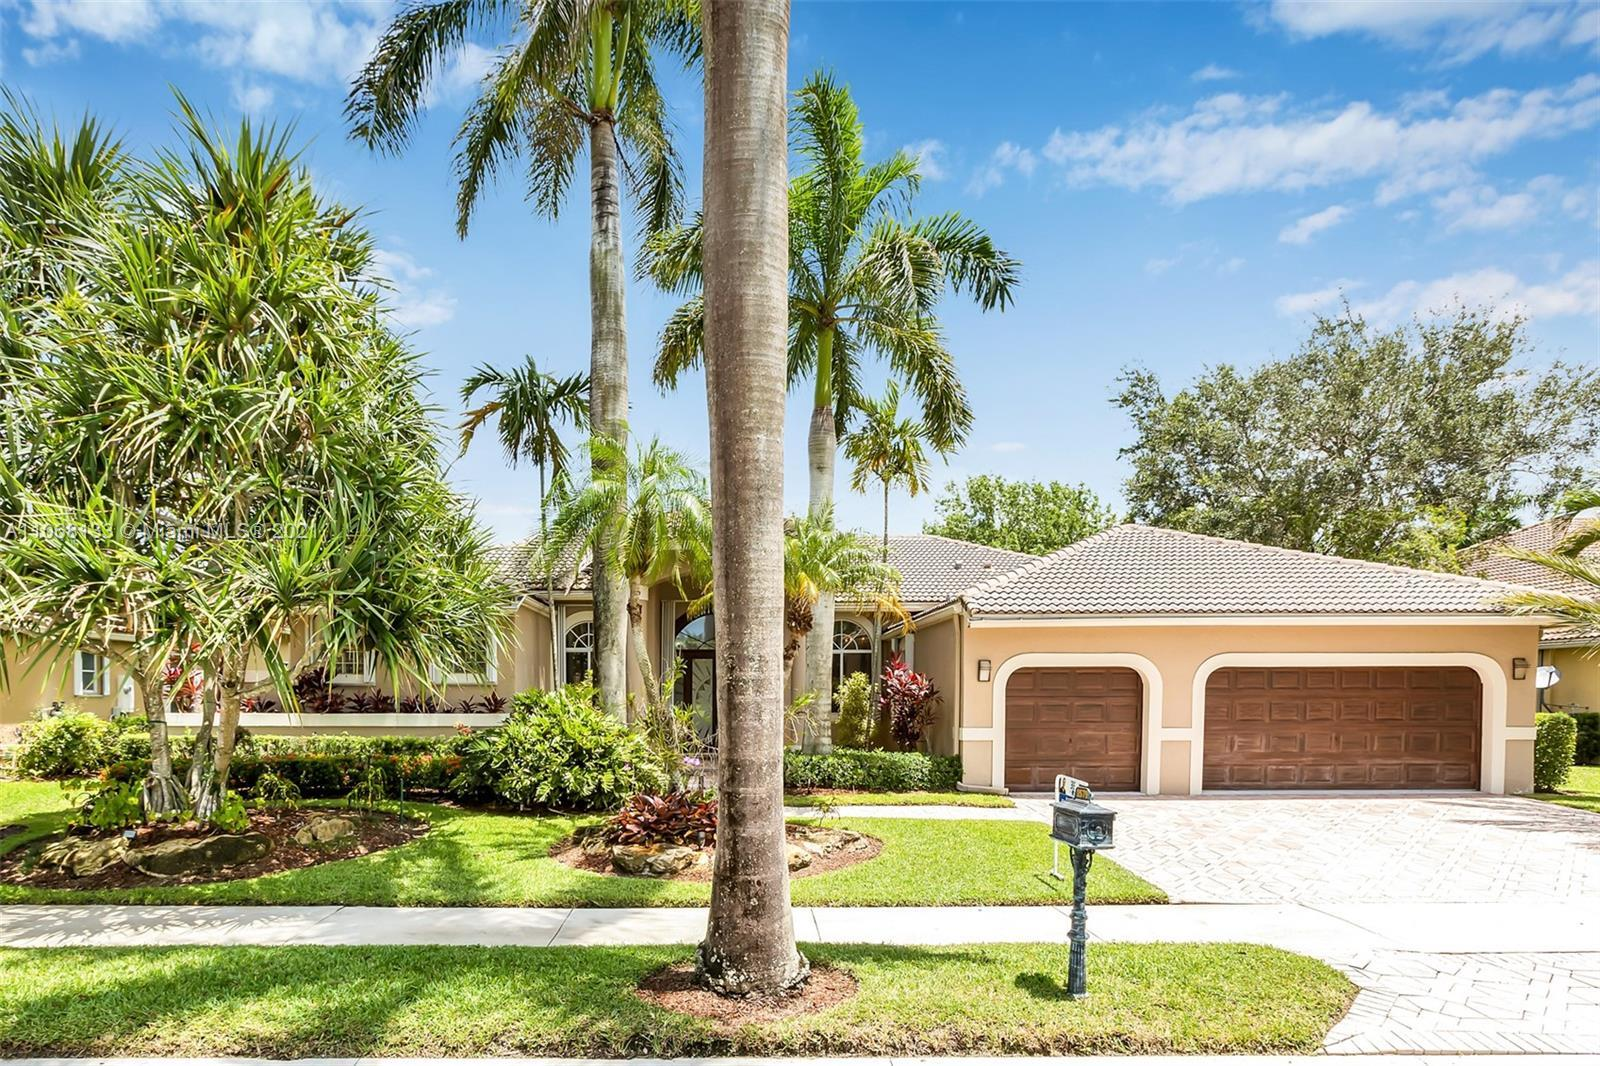 GORGEOUS 1 STORY, DOUBLE FAIRWAY-GOLF COURSE LOT WITH AN AWESOME VIEW!  CUSTOM BUILT GEM!  DOUBLE DO